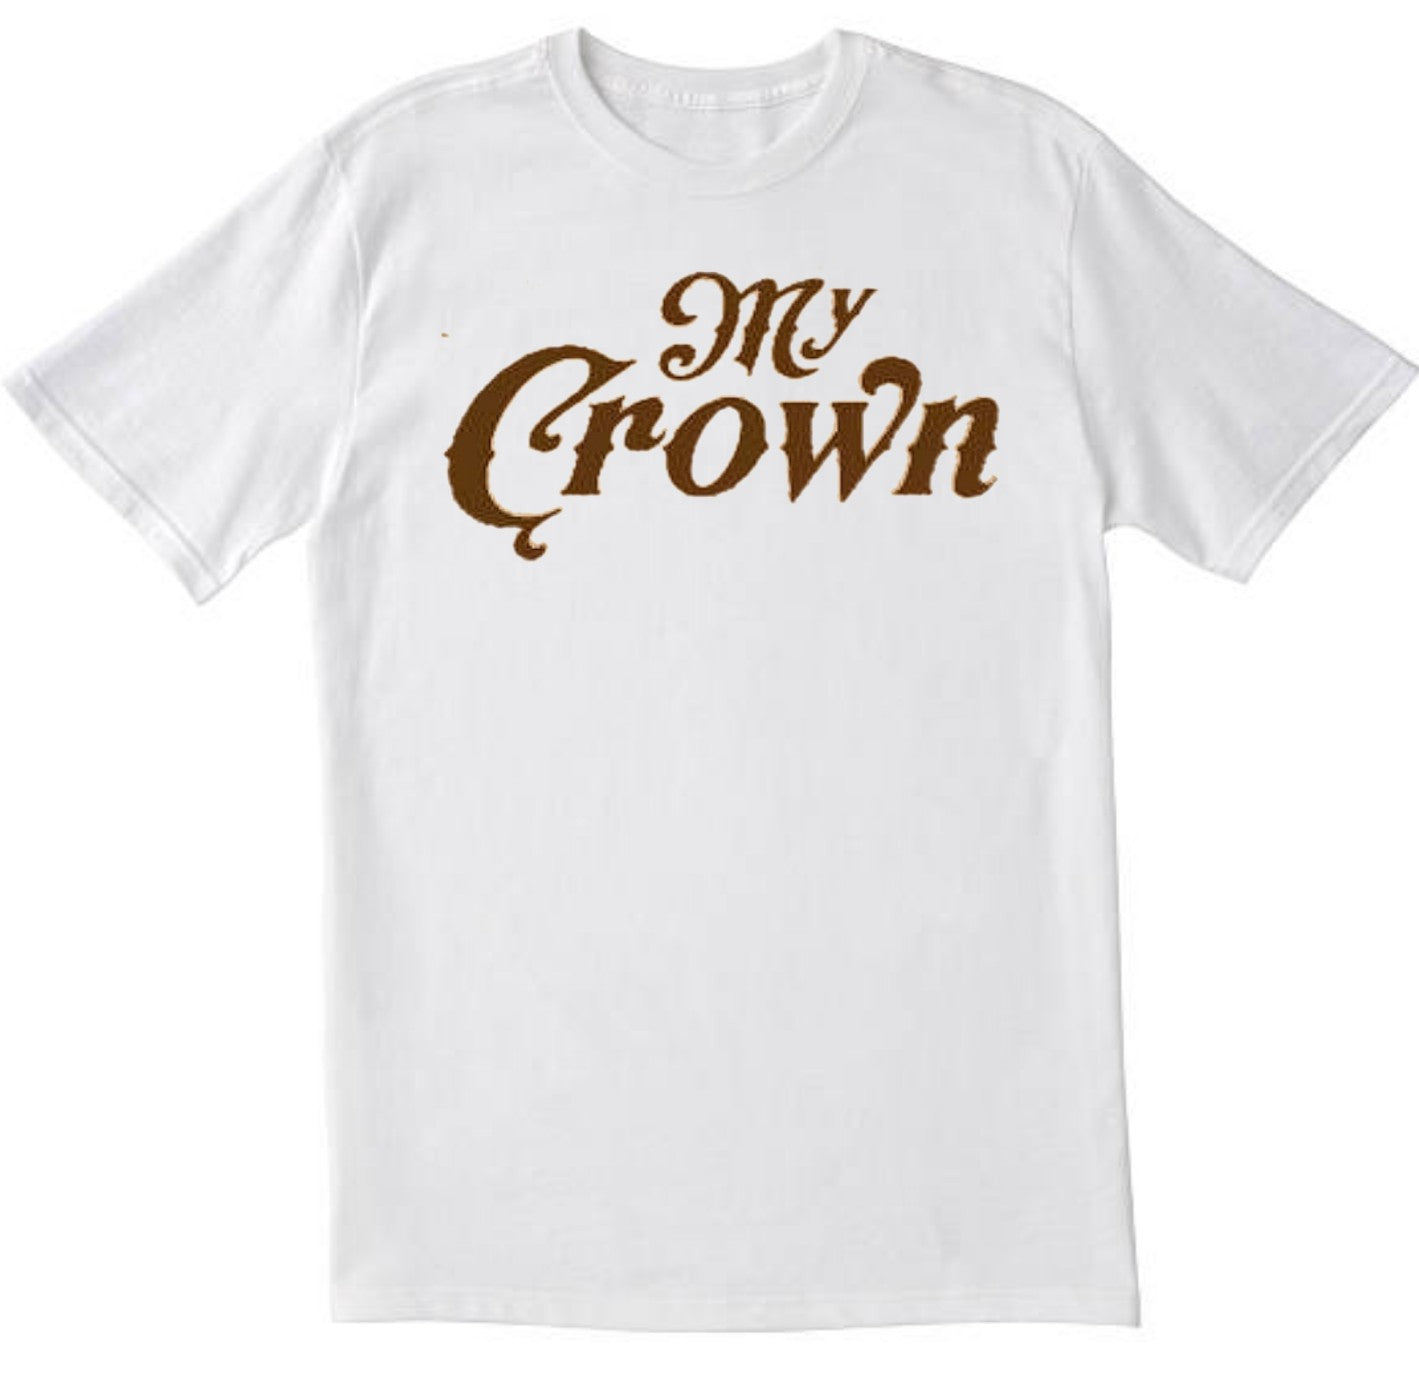 My Crown T-Shirt